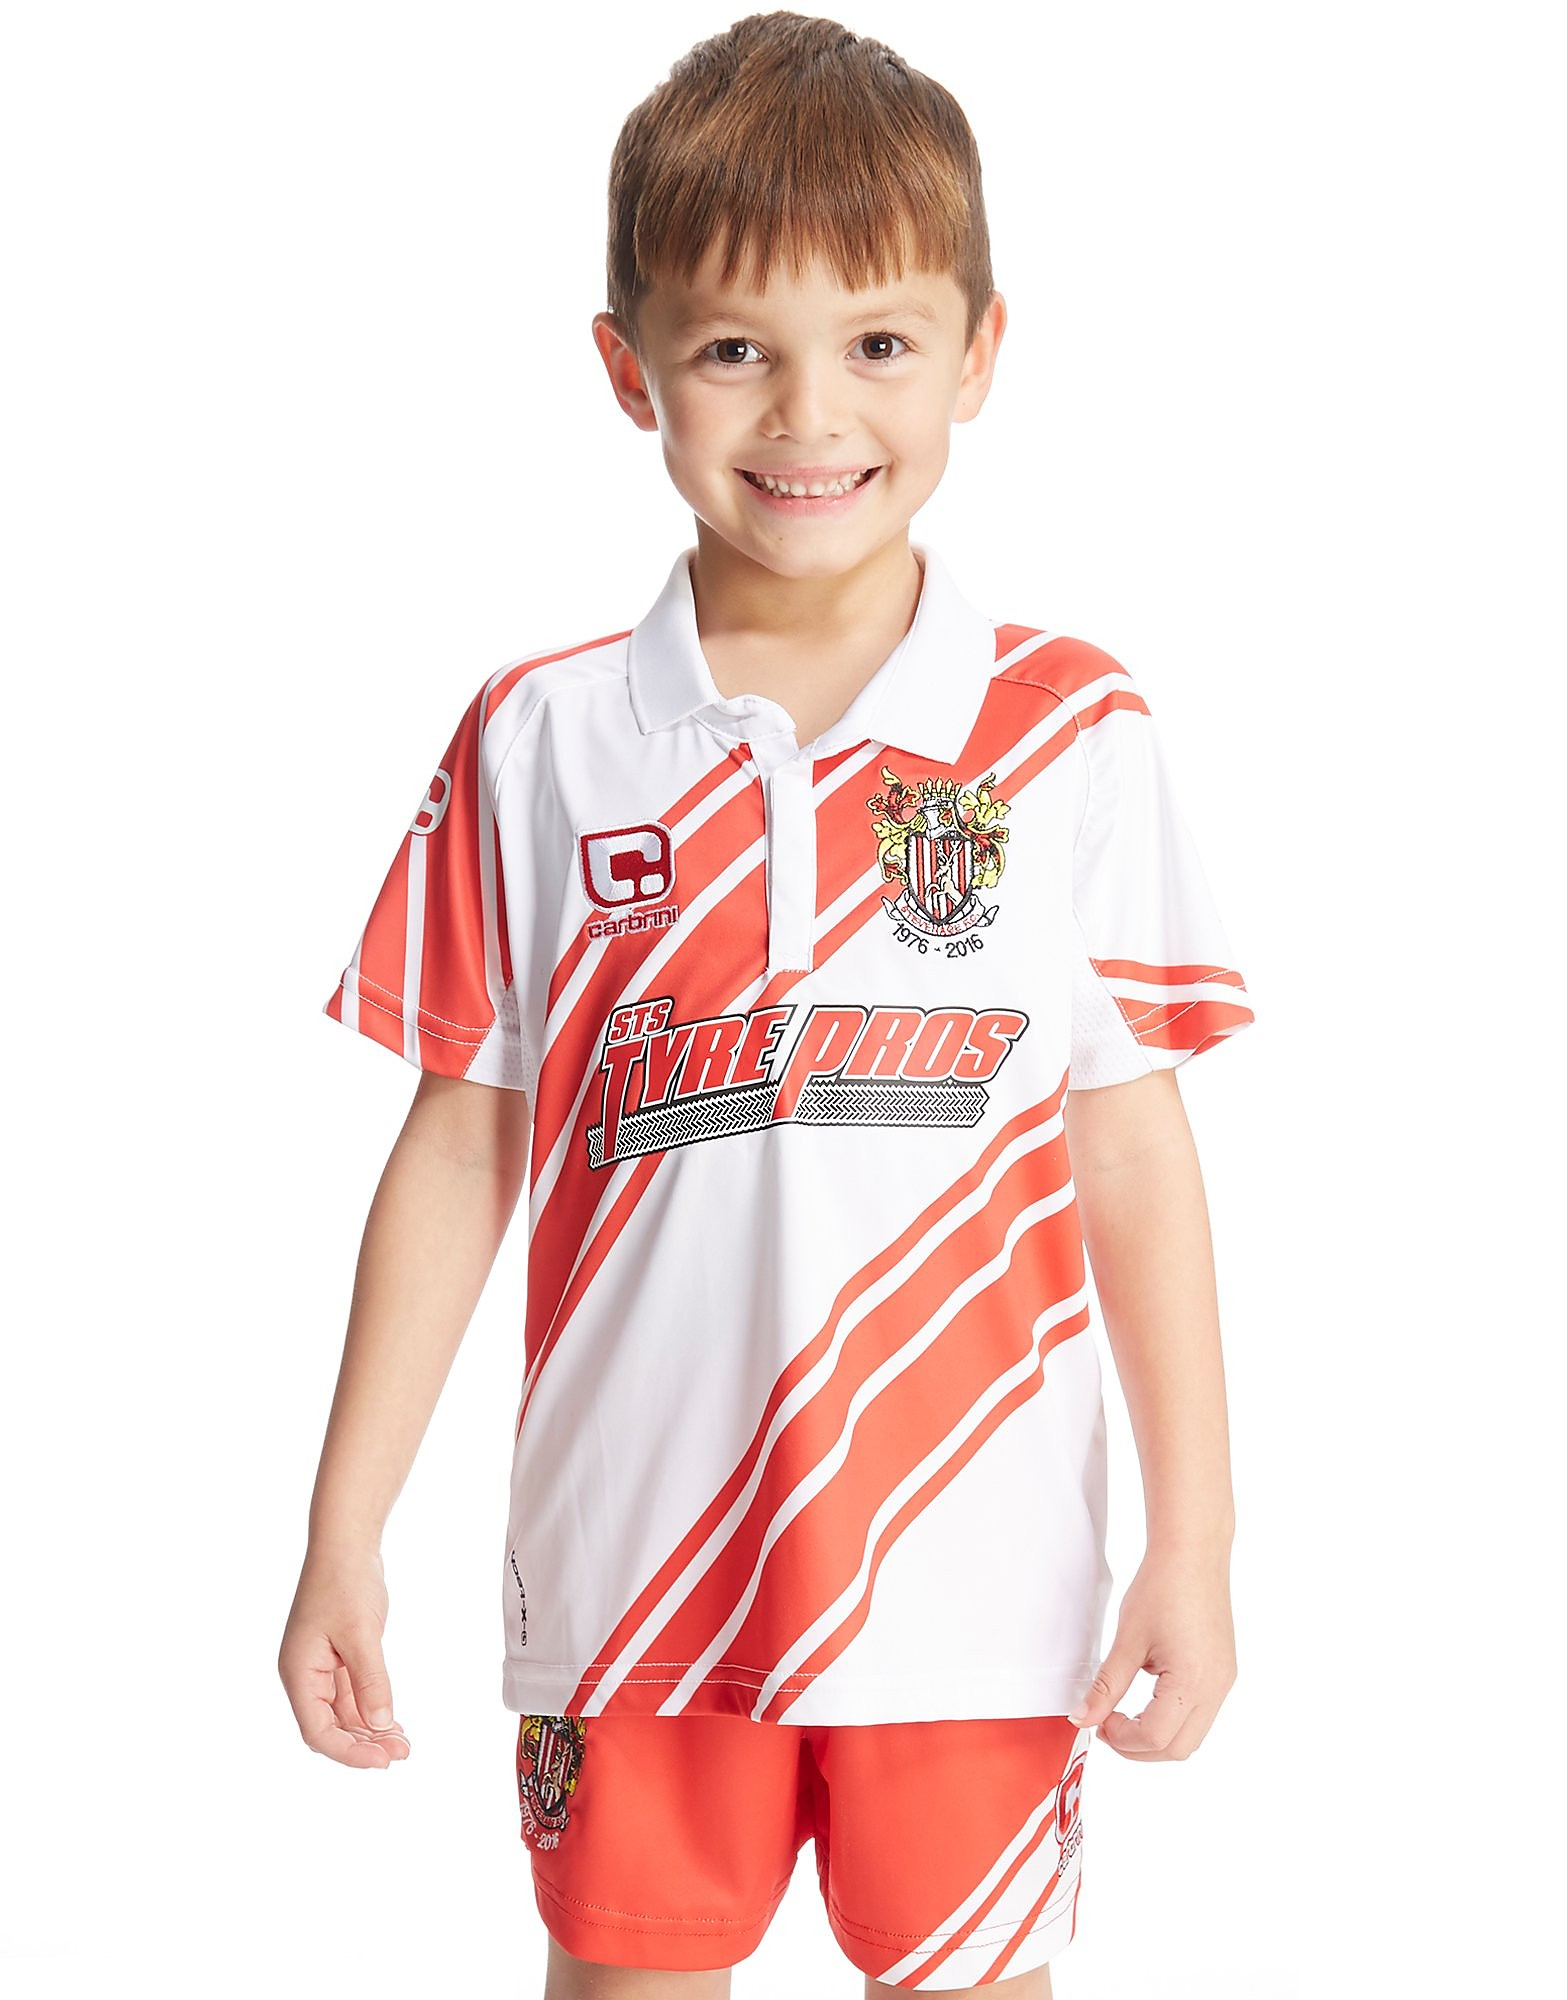 Carbrini Stevenage FC 2016/17 Home Kit Children